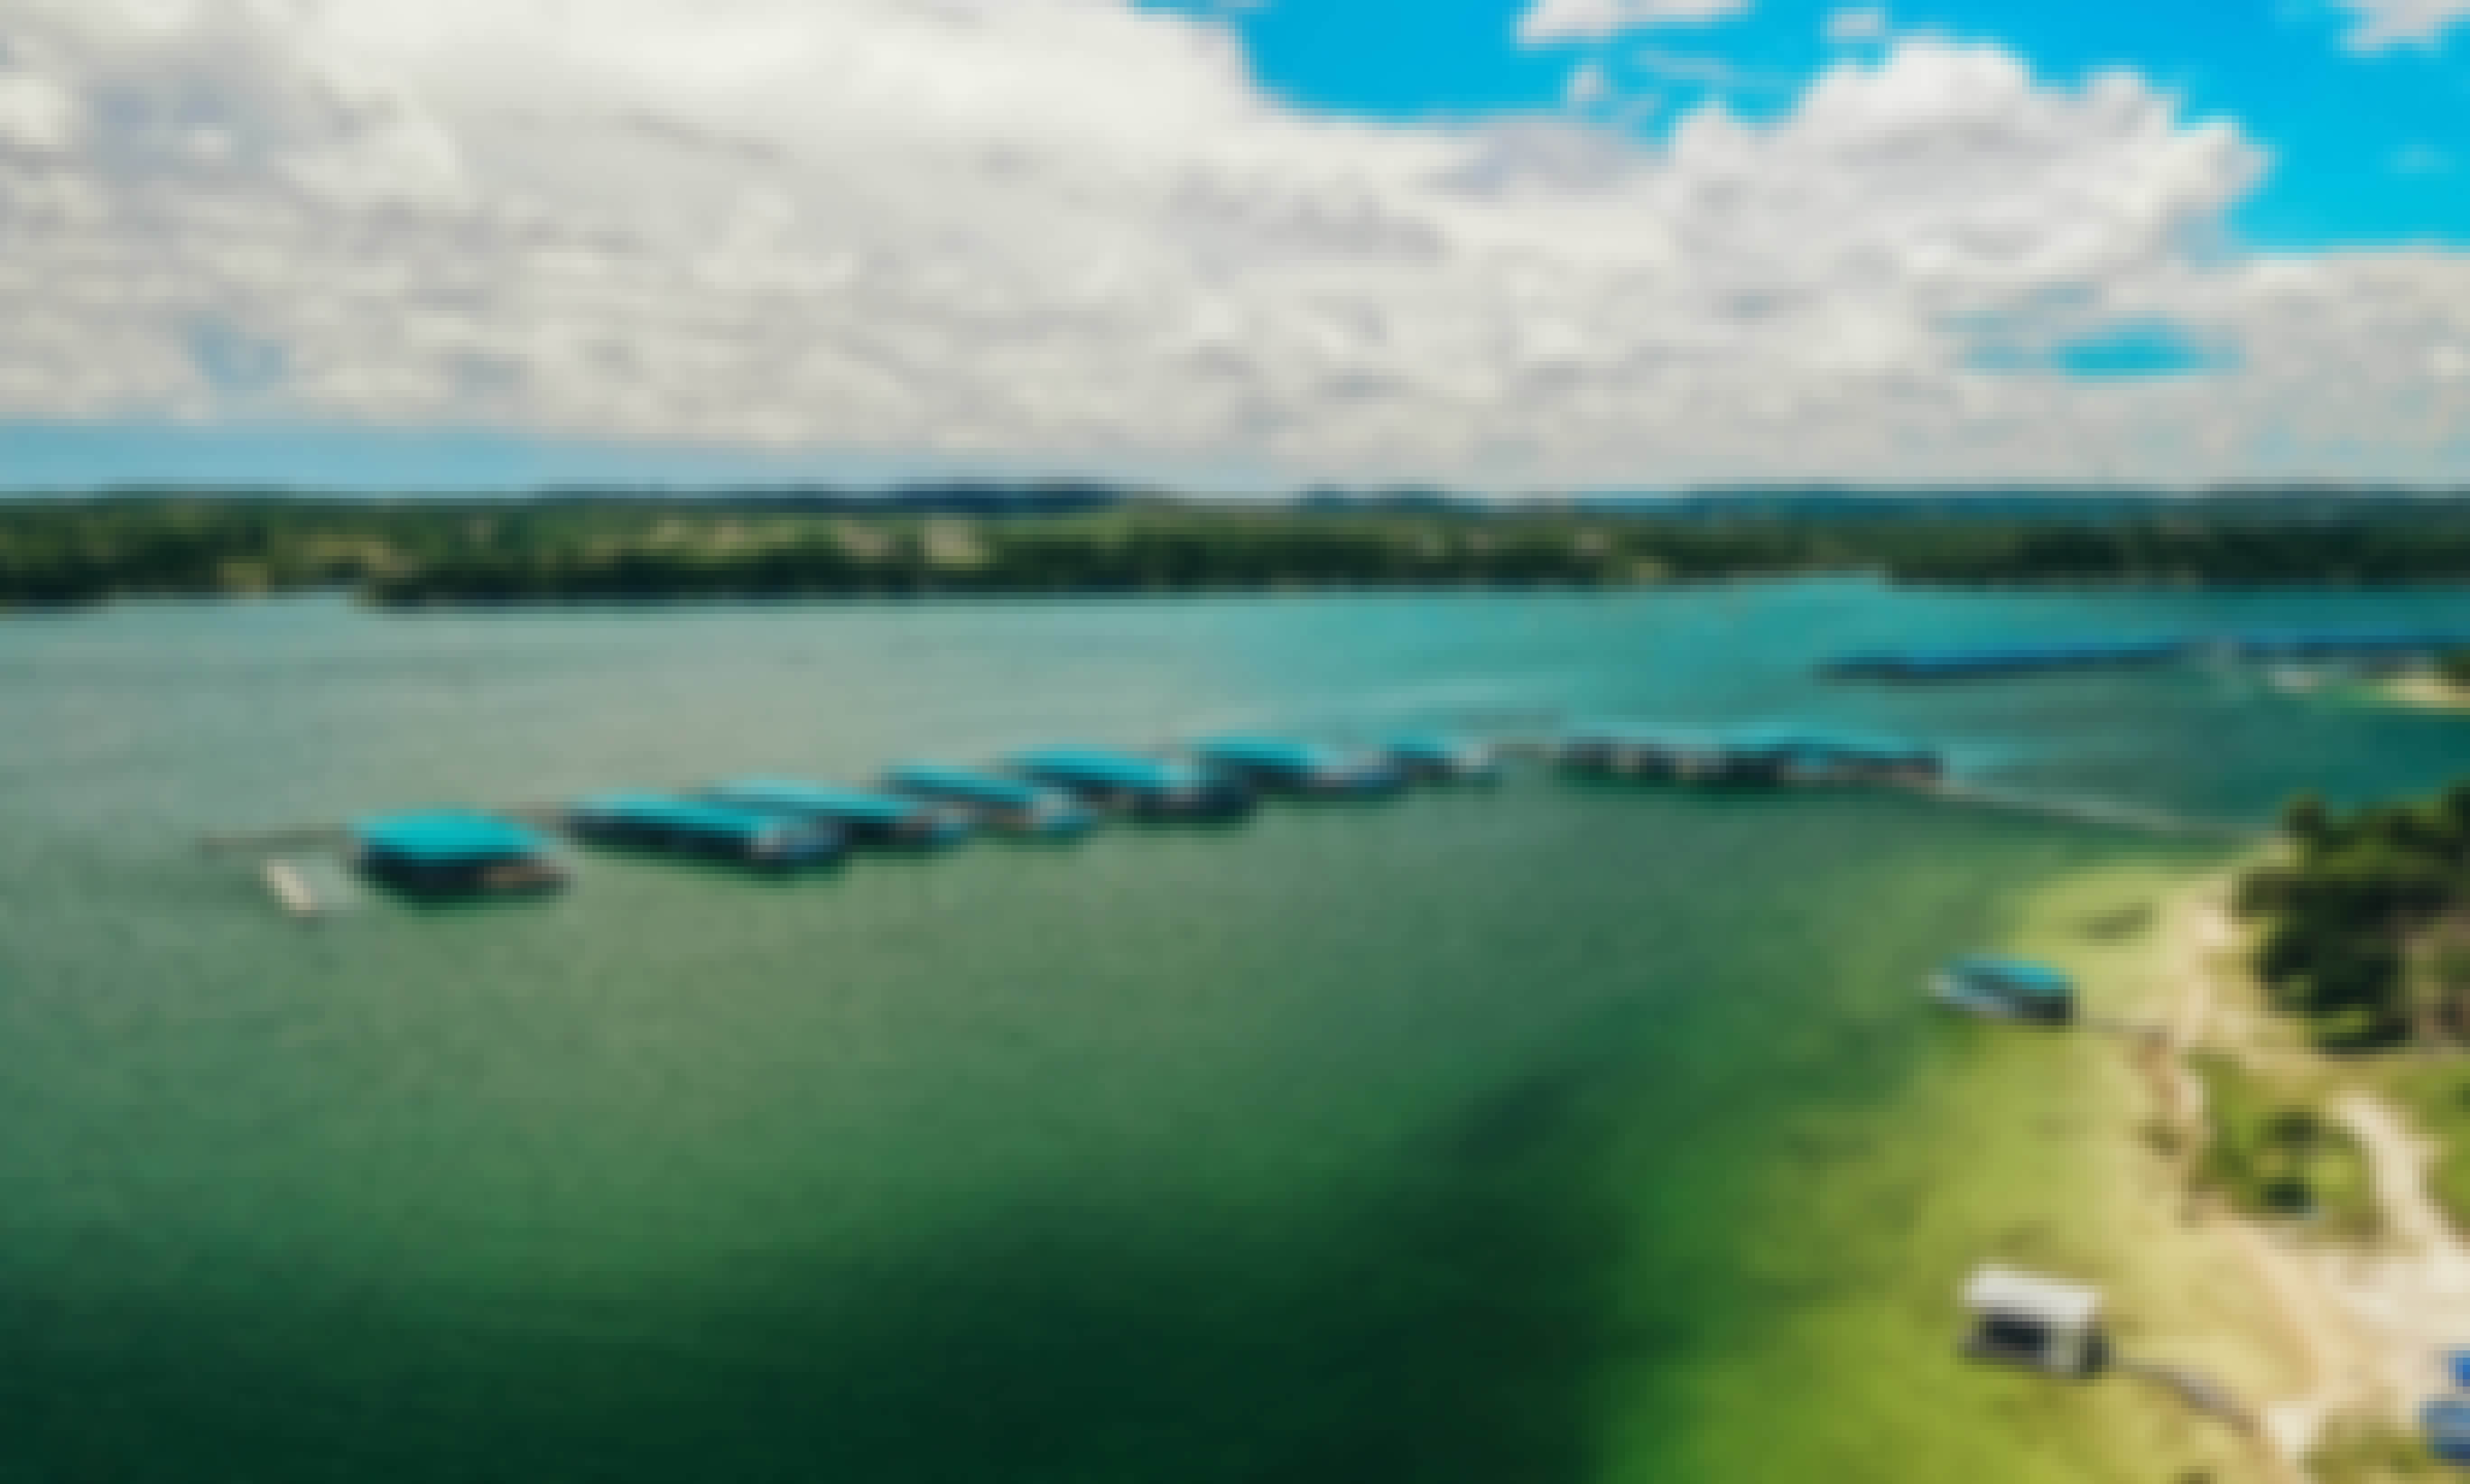 Spend a Night onboard an Airconditioned 55' Houseboat on Sometimes Islands in Lake Travis